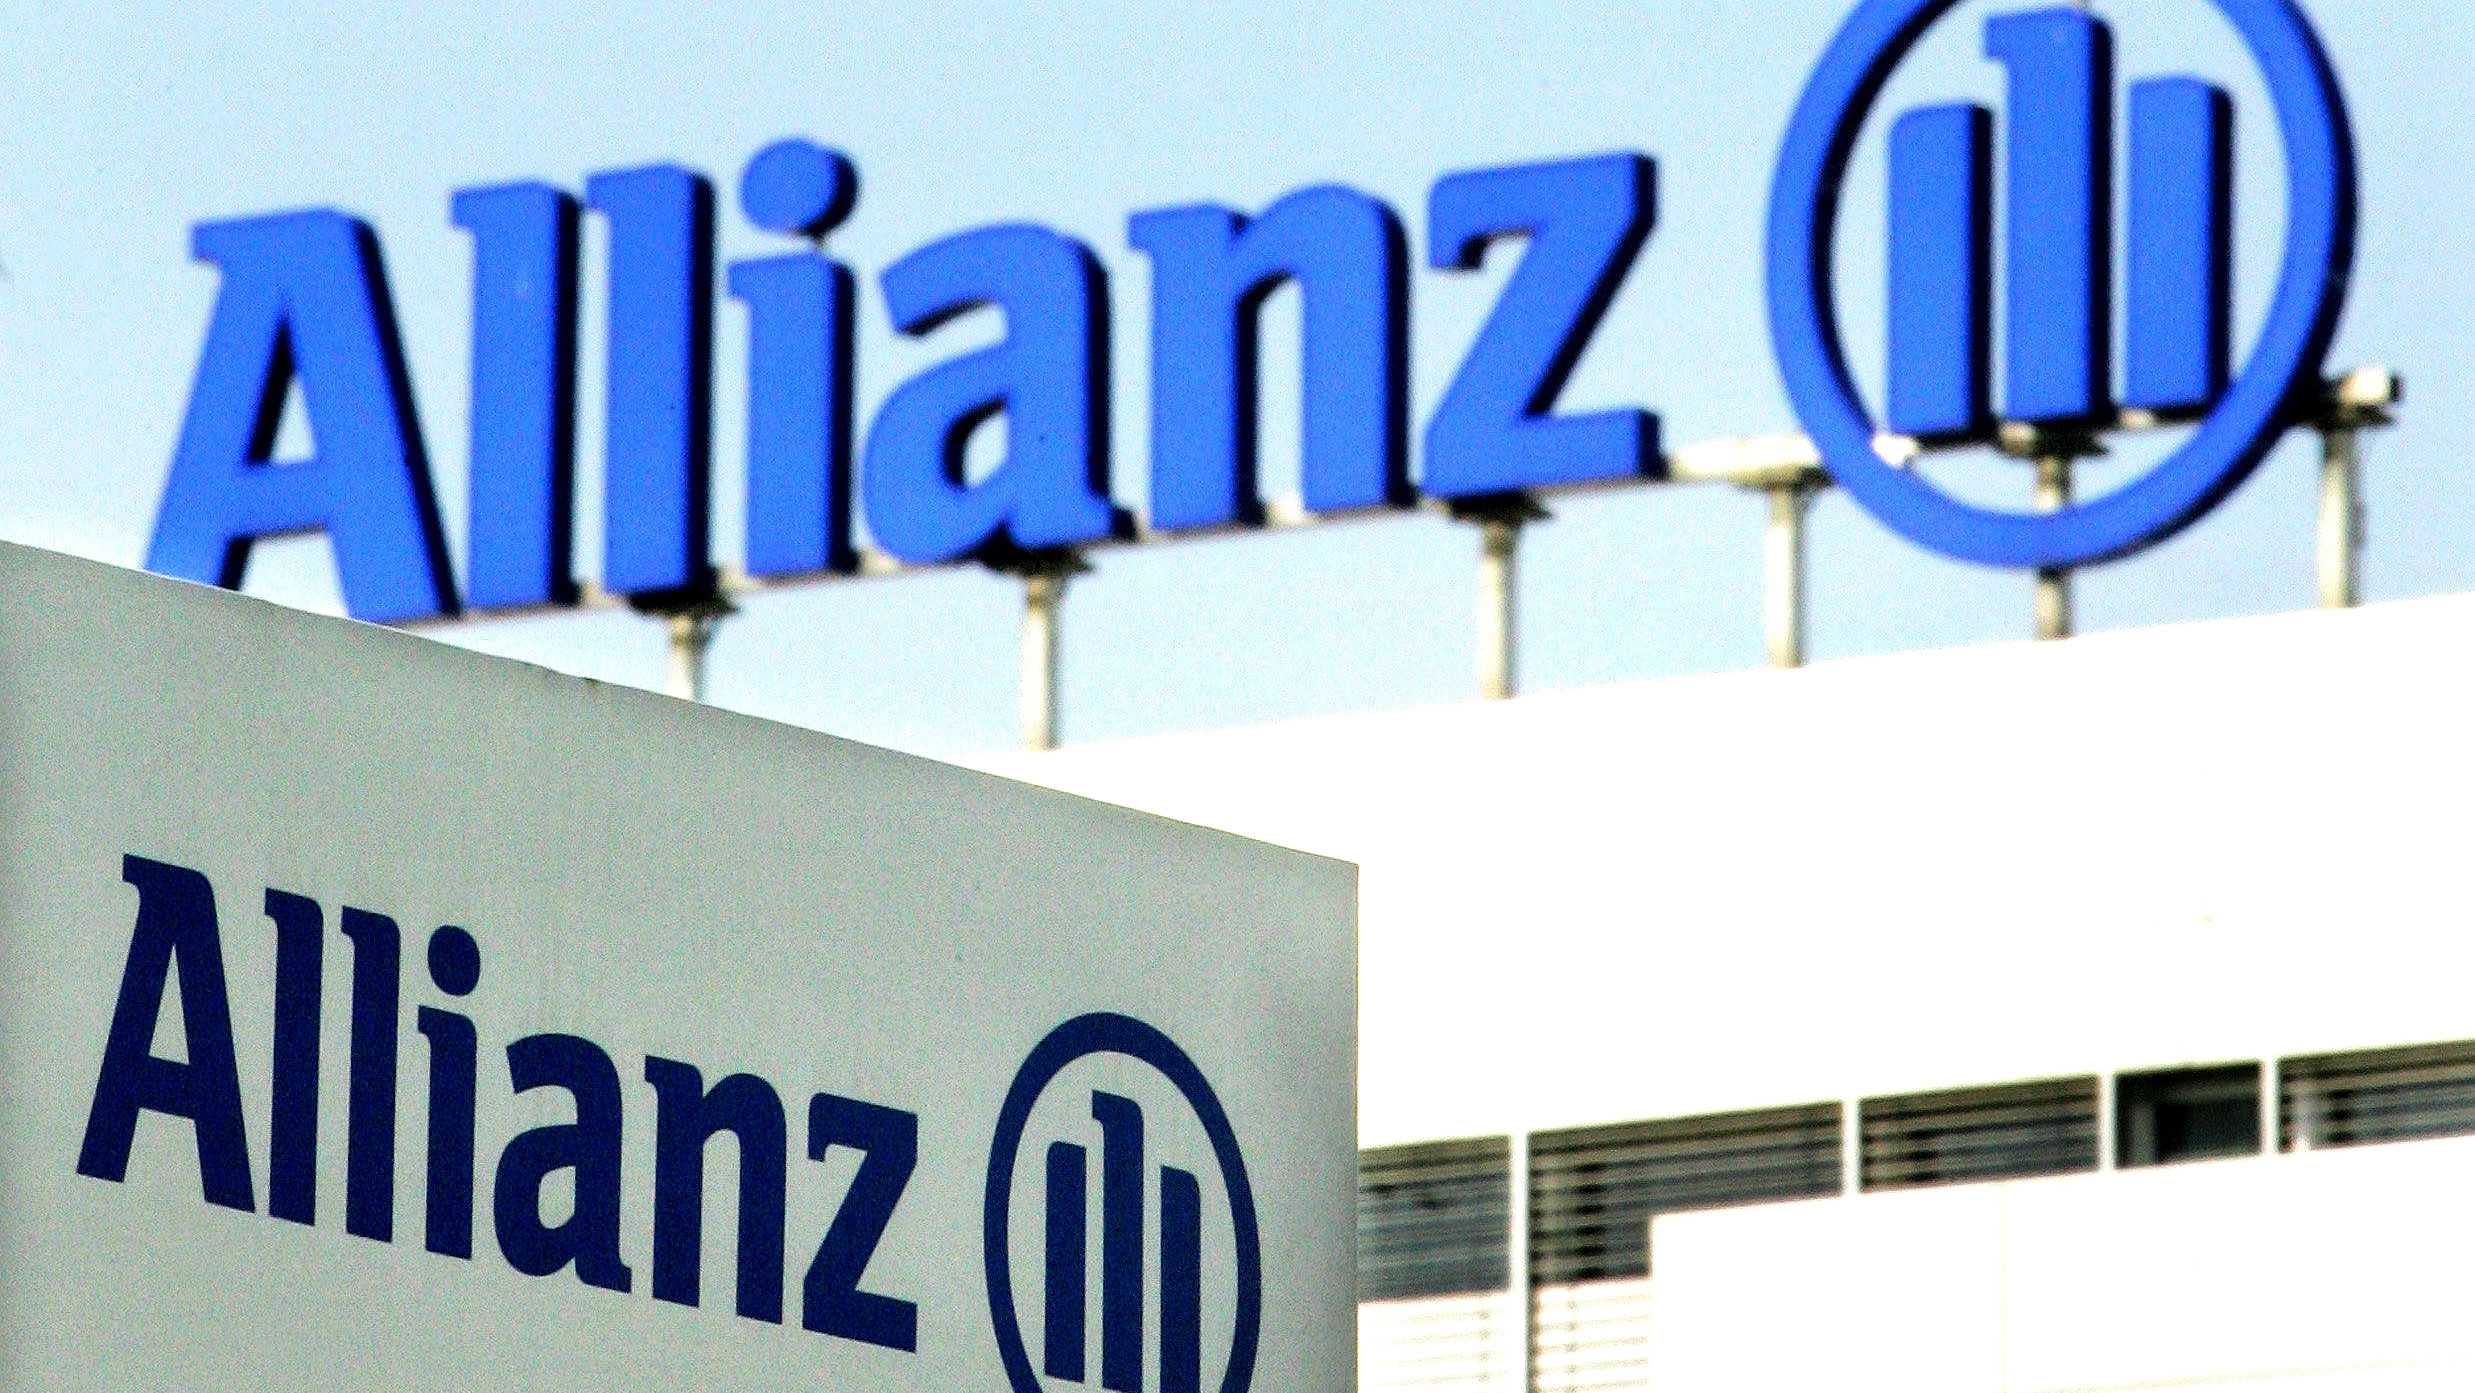 German insurer Allianz reports net income growth in Q3